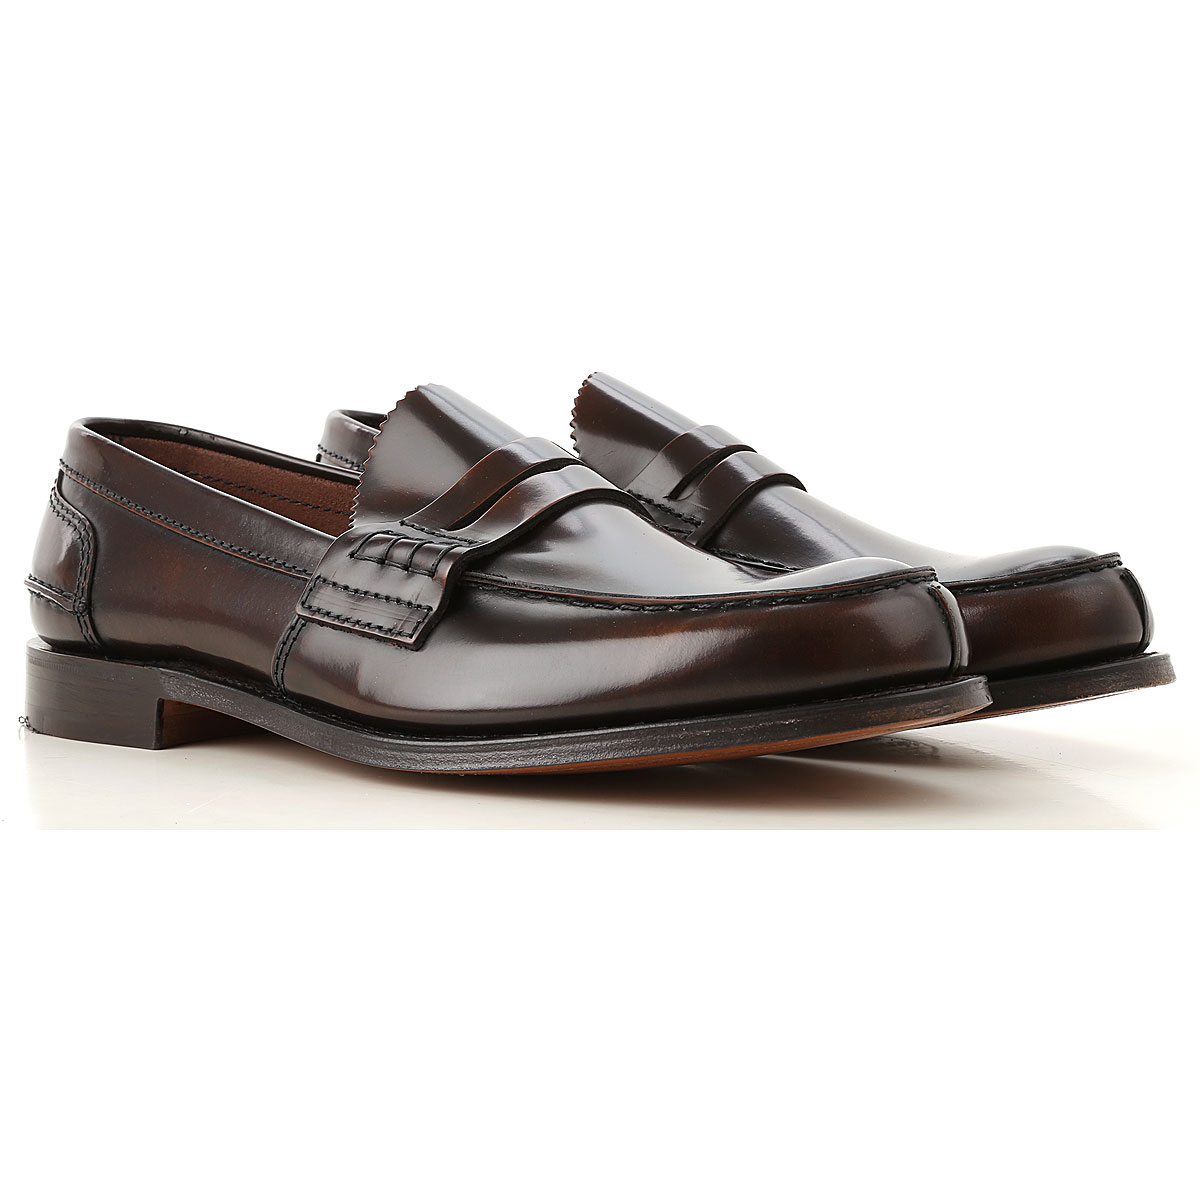 Image of Church's Loafers for Men, Ebony, Leather, 2017, 10 10.5 11 7 7.5 8 8.5 9 9.5